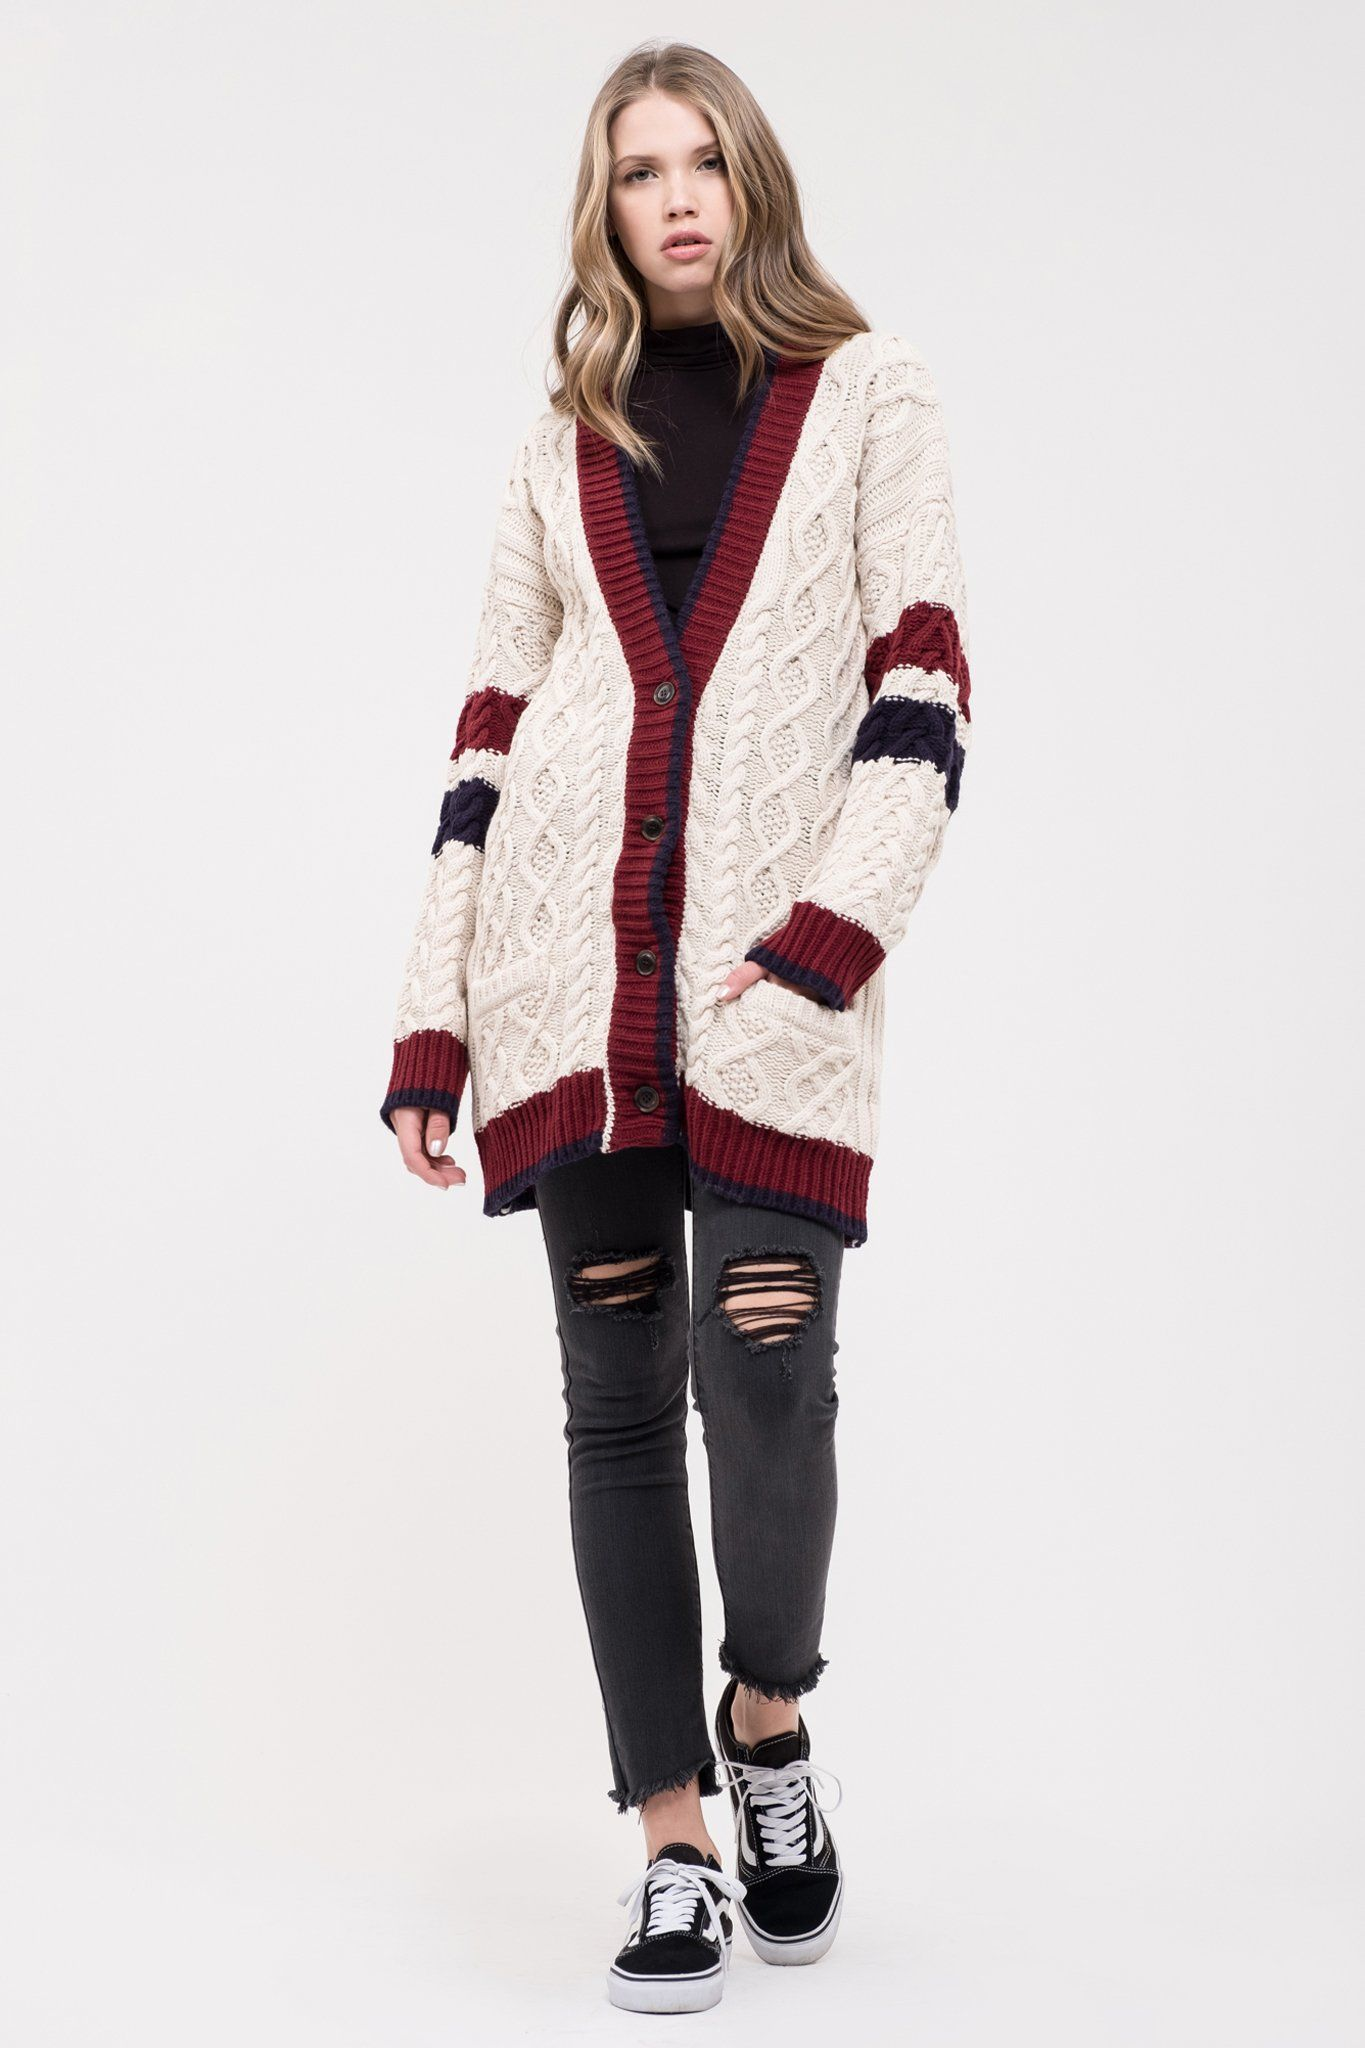 8362e21b8179 caption text | clothes shopping | Knit cardigan, Shopping, Cable ...